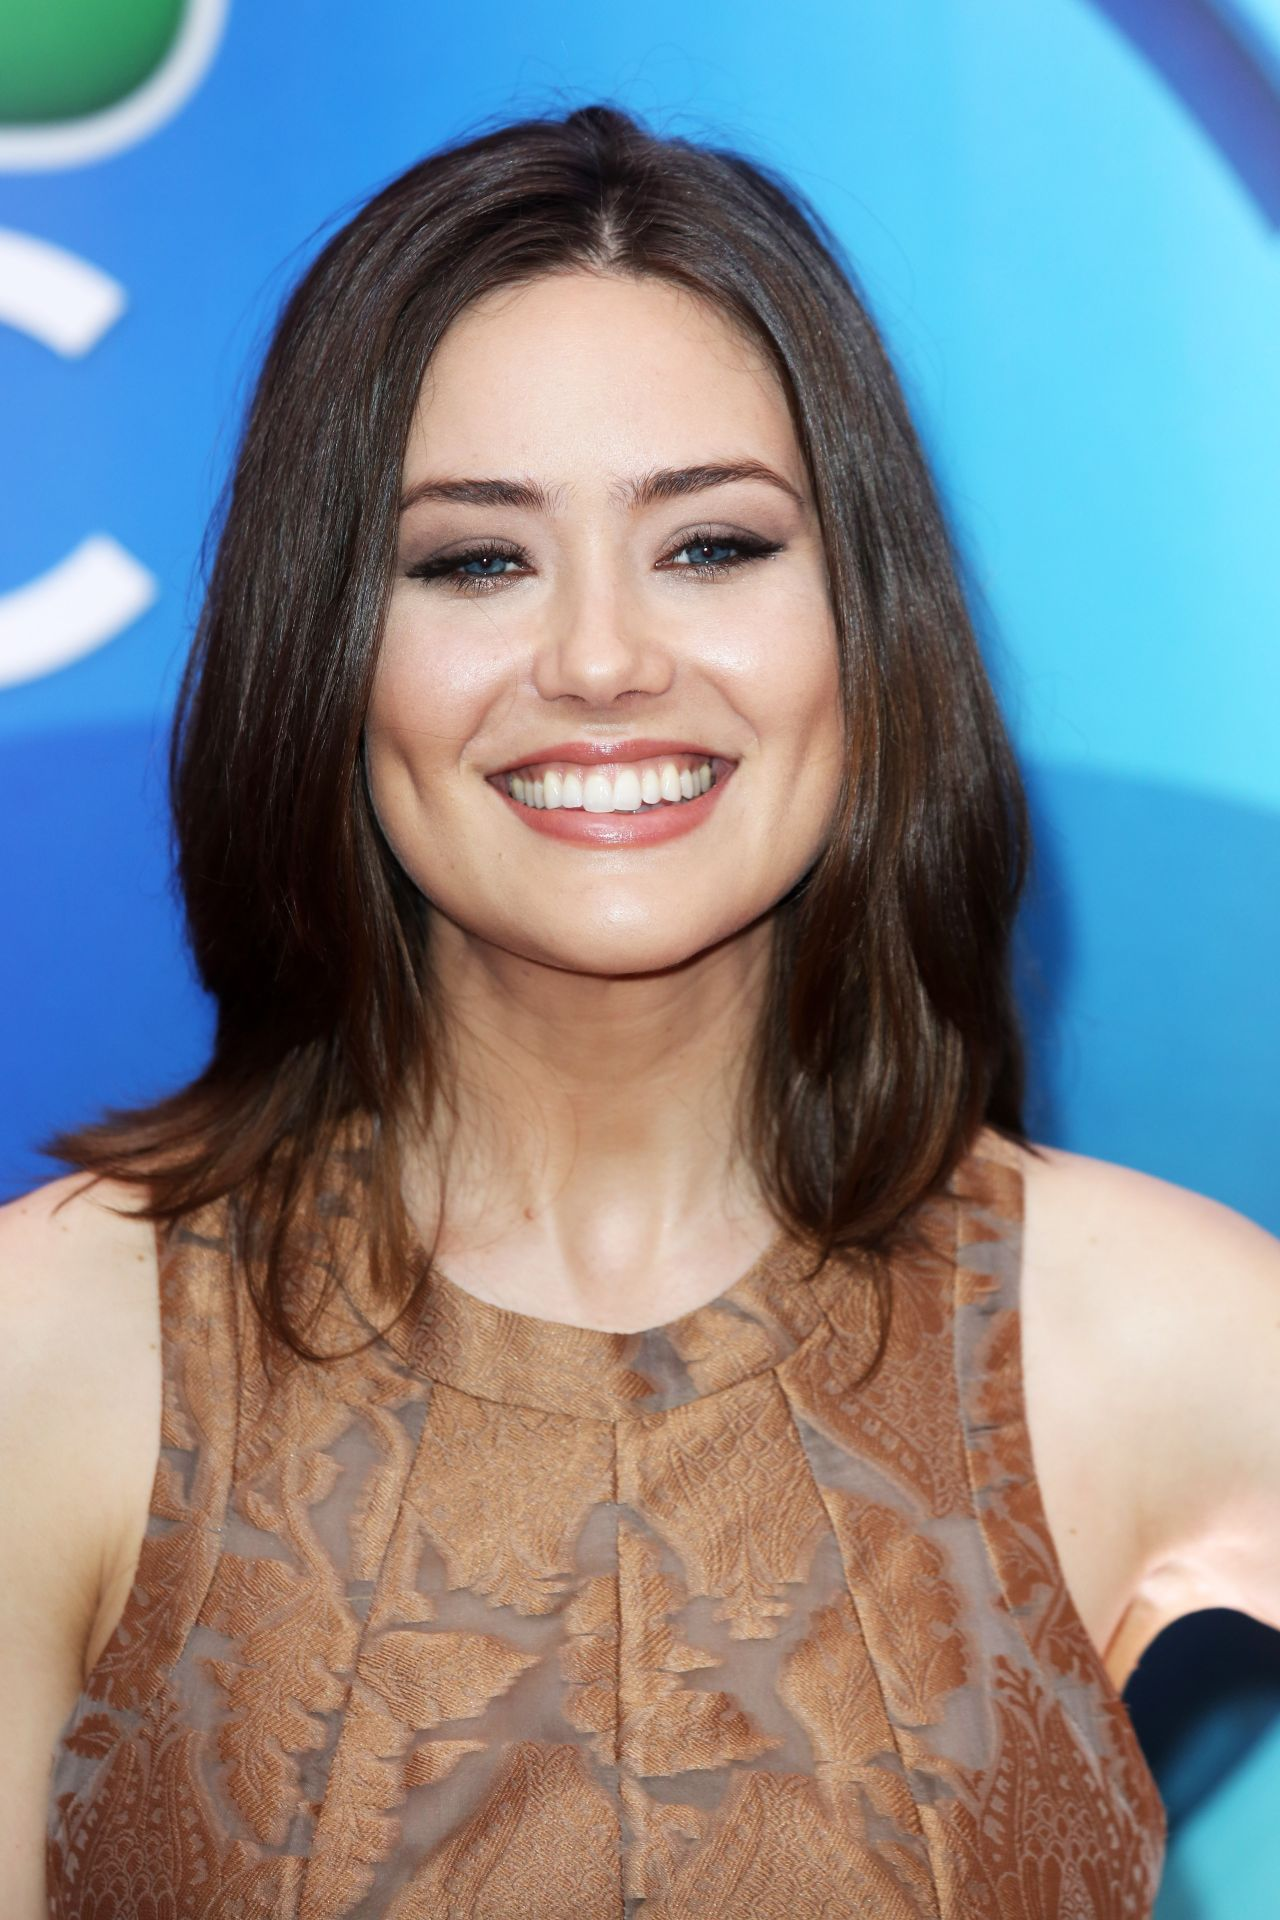 Megan Boone 2015 Nbc Upfront Presentation Radio City